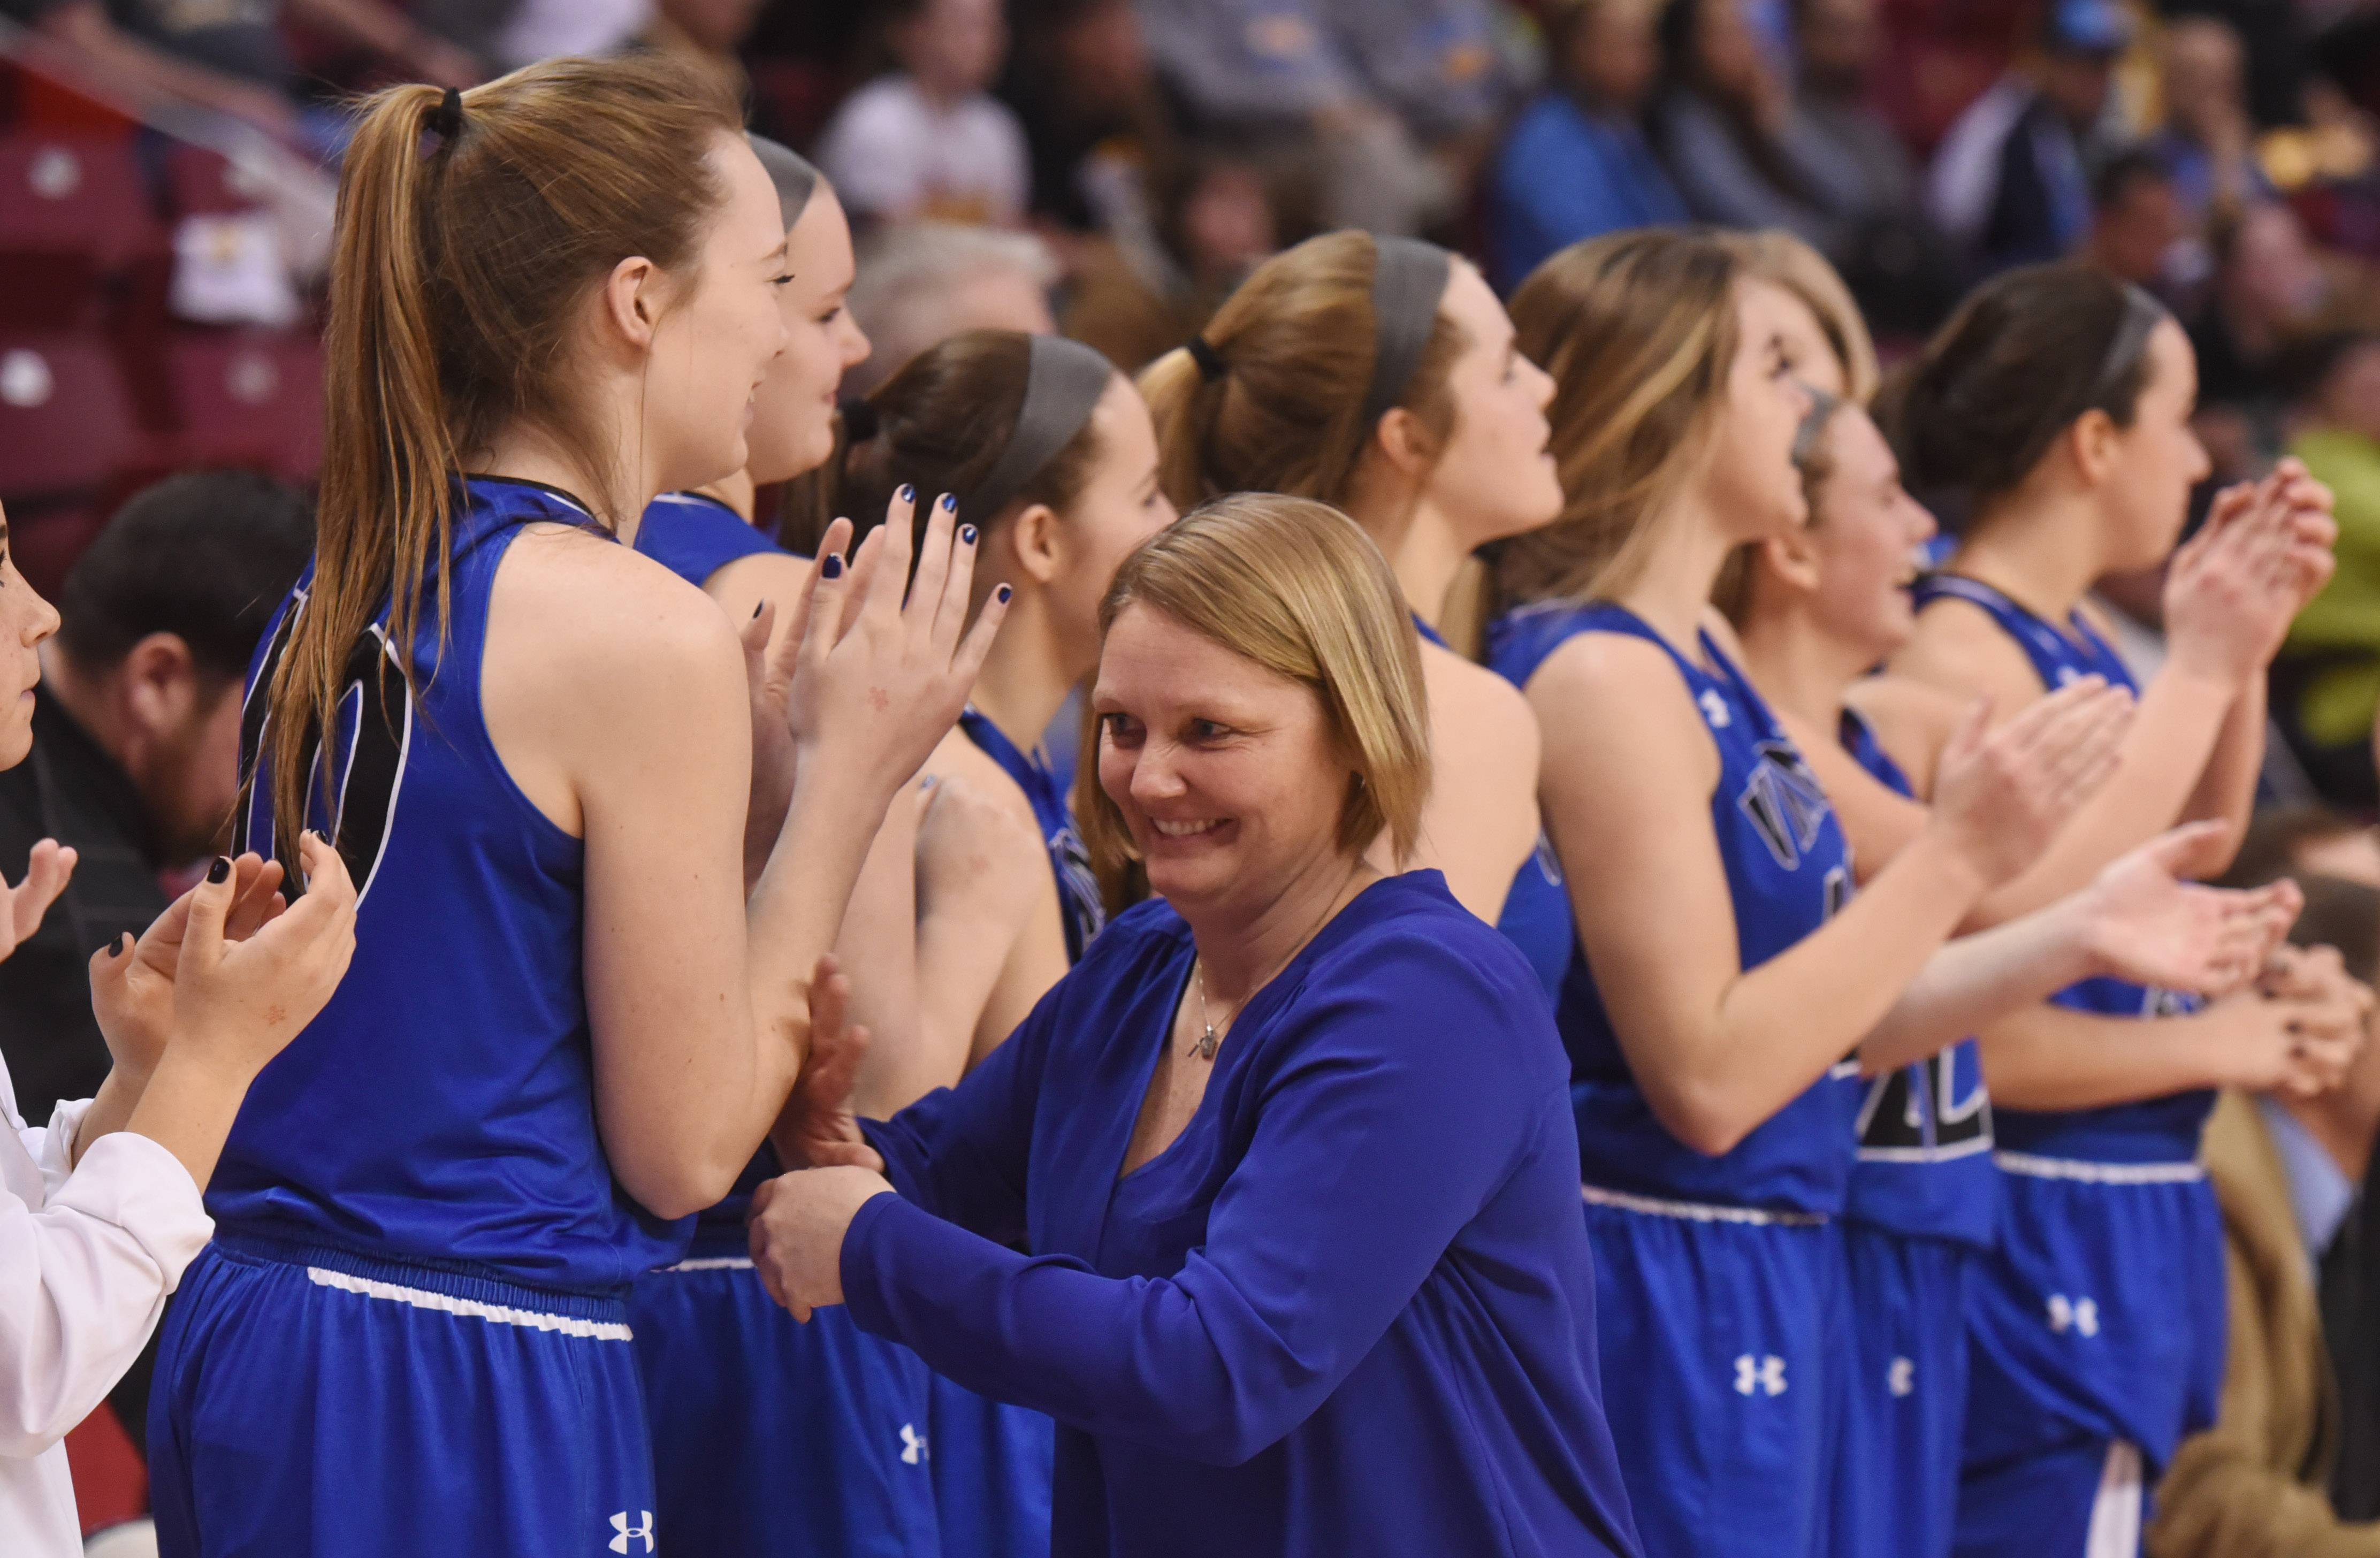 Geneva head coach Sarah Meadows celebrates with her team members at the conclusion of the Vikings' 58-41 win over Maine West during the Class 4A girls basketball semifinals at Redbird Arena in Normal Friday.